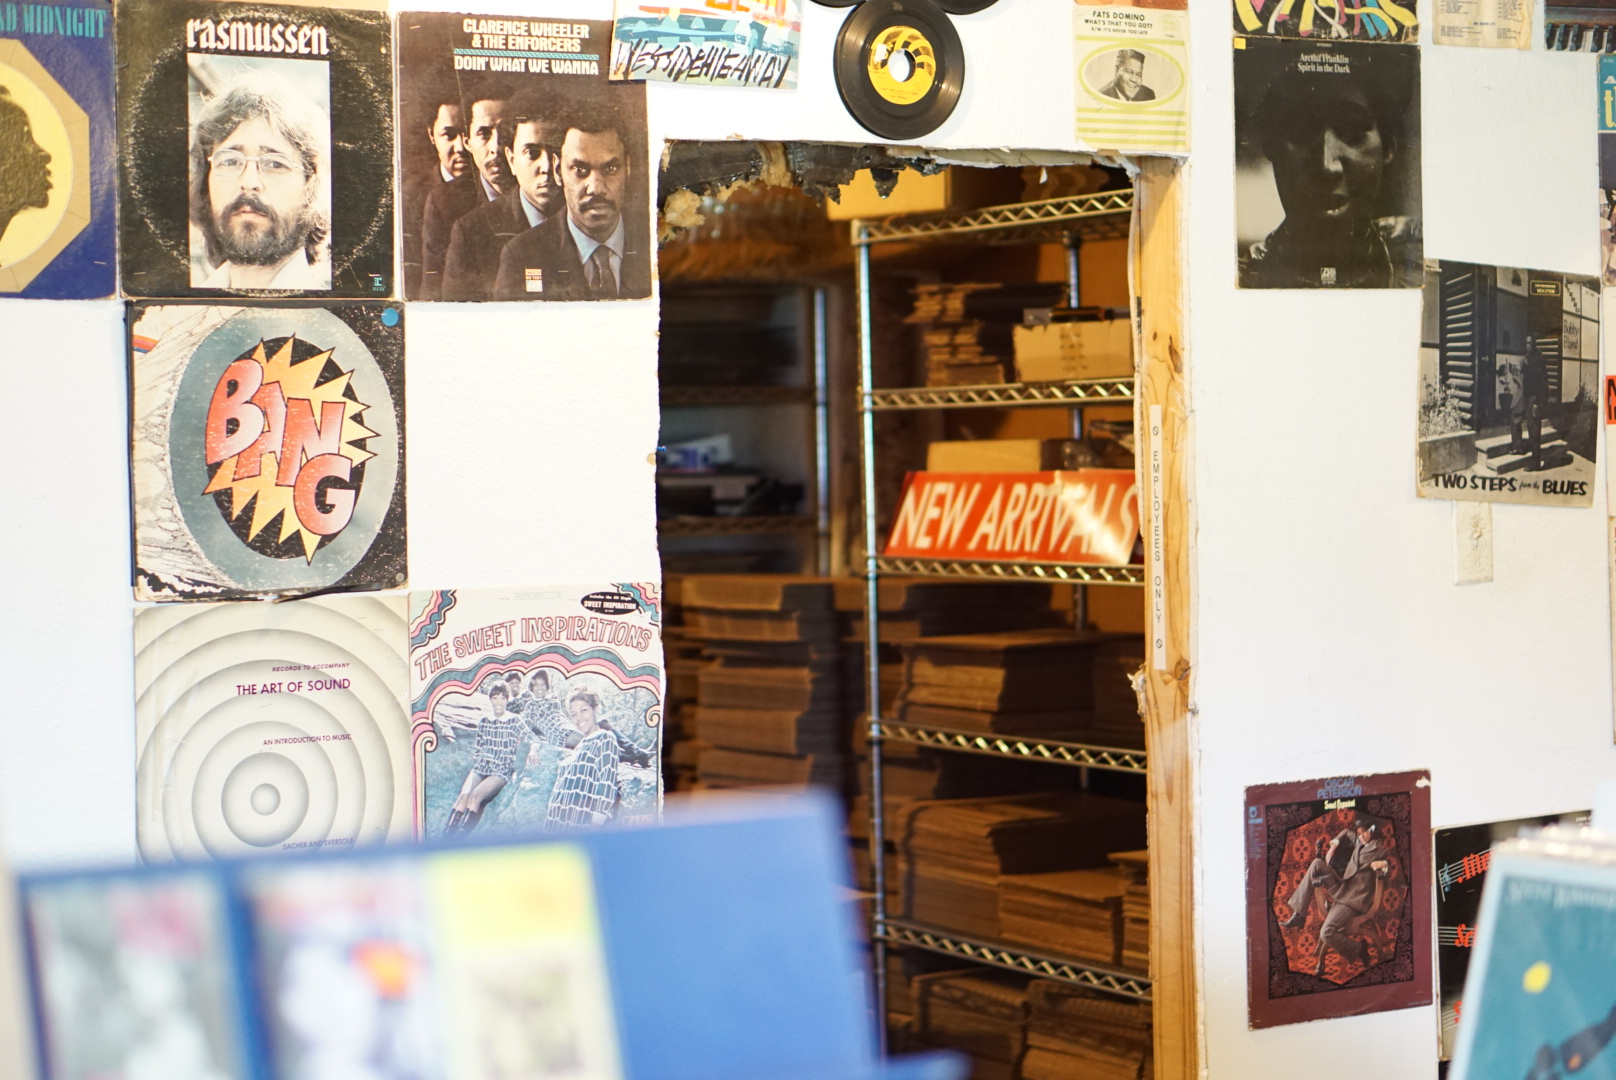 Inside the awesome Friends Of Sound Vinyl Shop